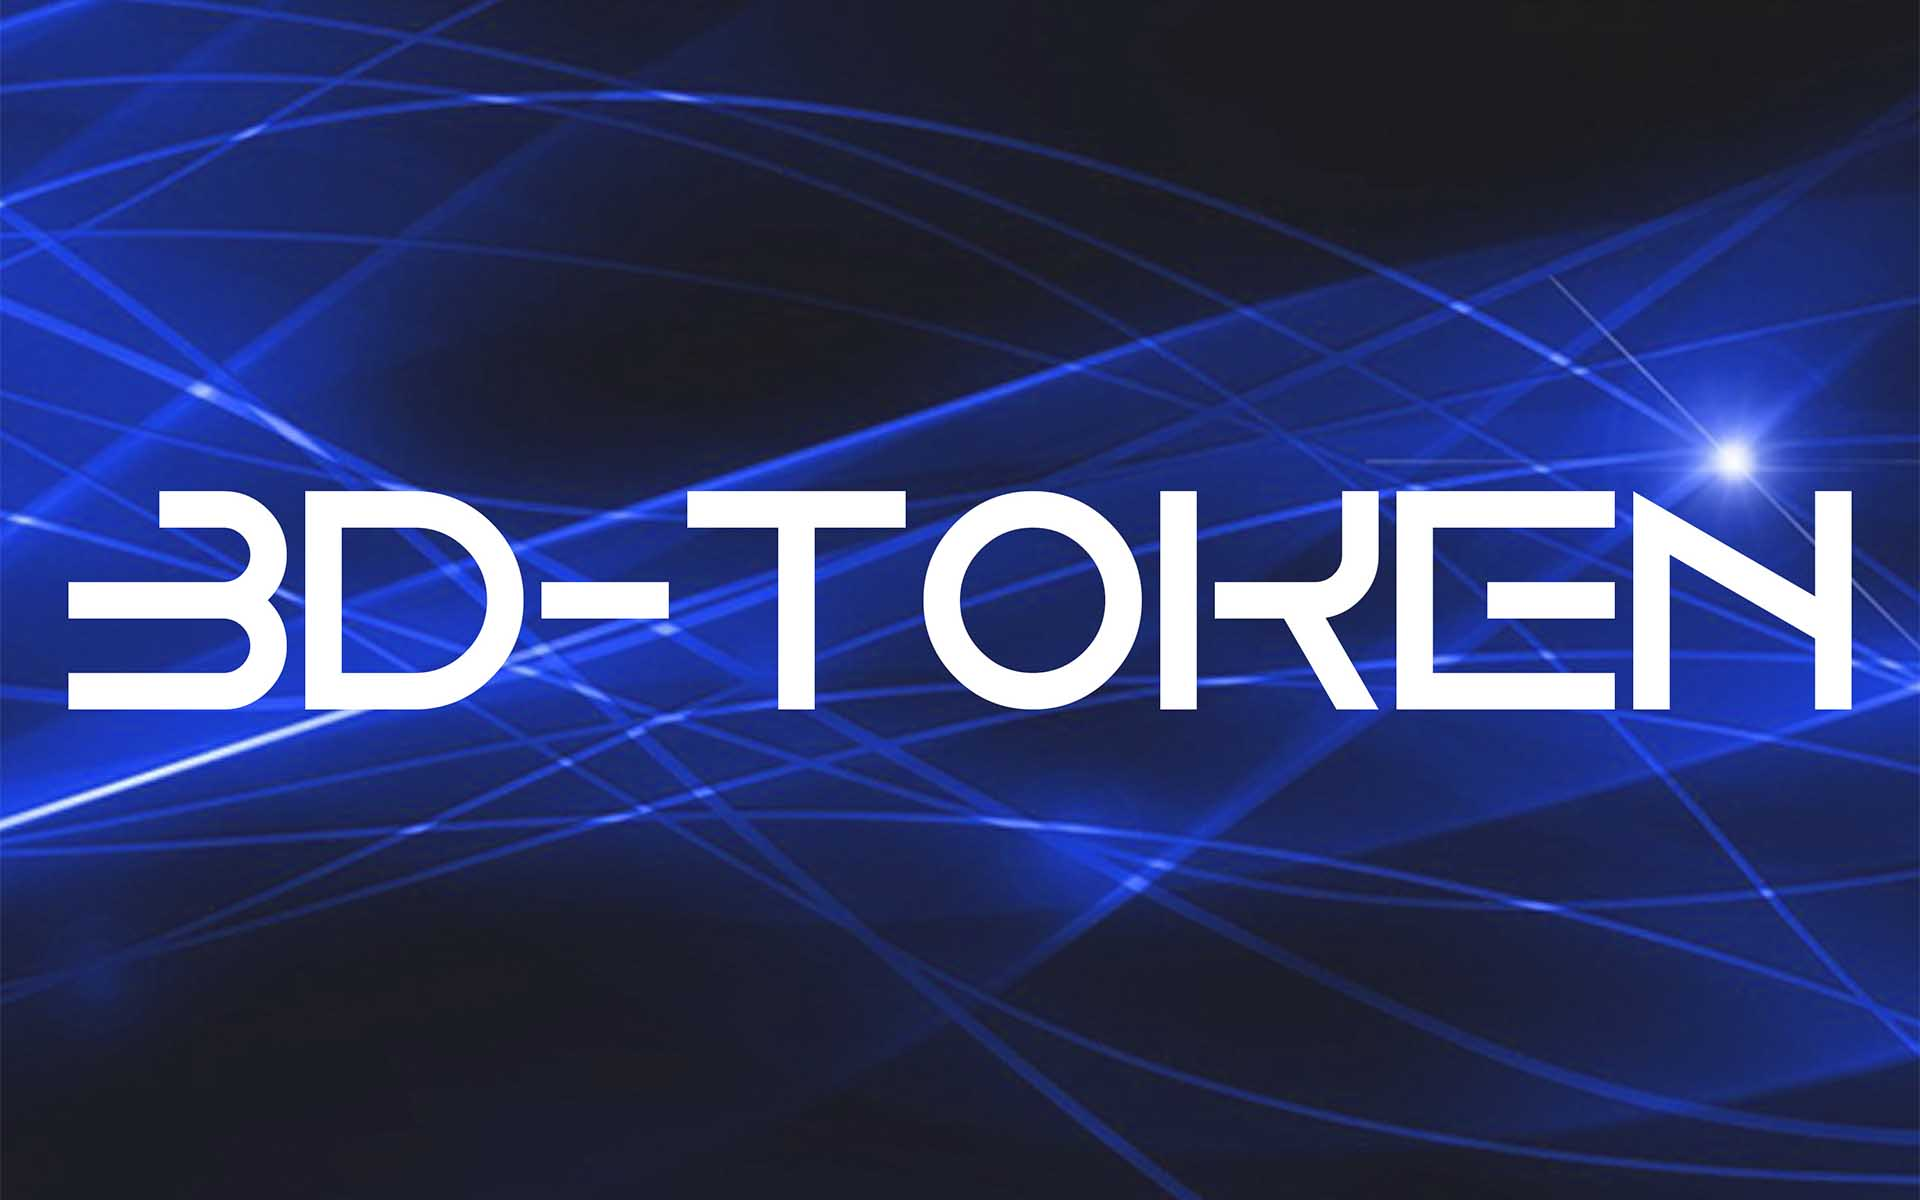 3D-Token ICO - 3D Printing Robots' Network Expansion Started